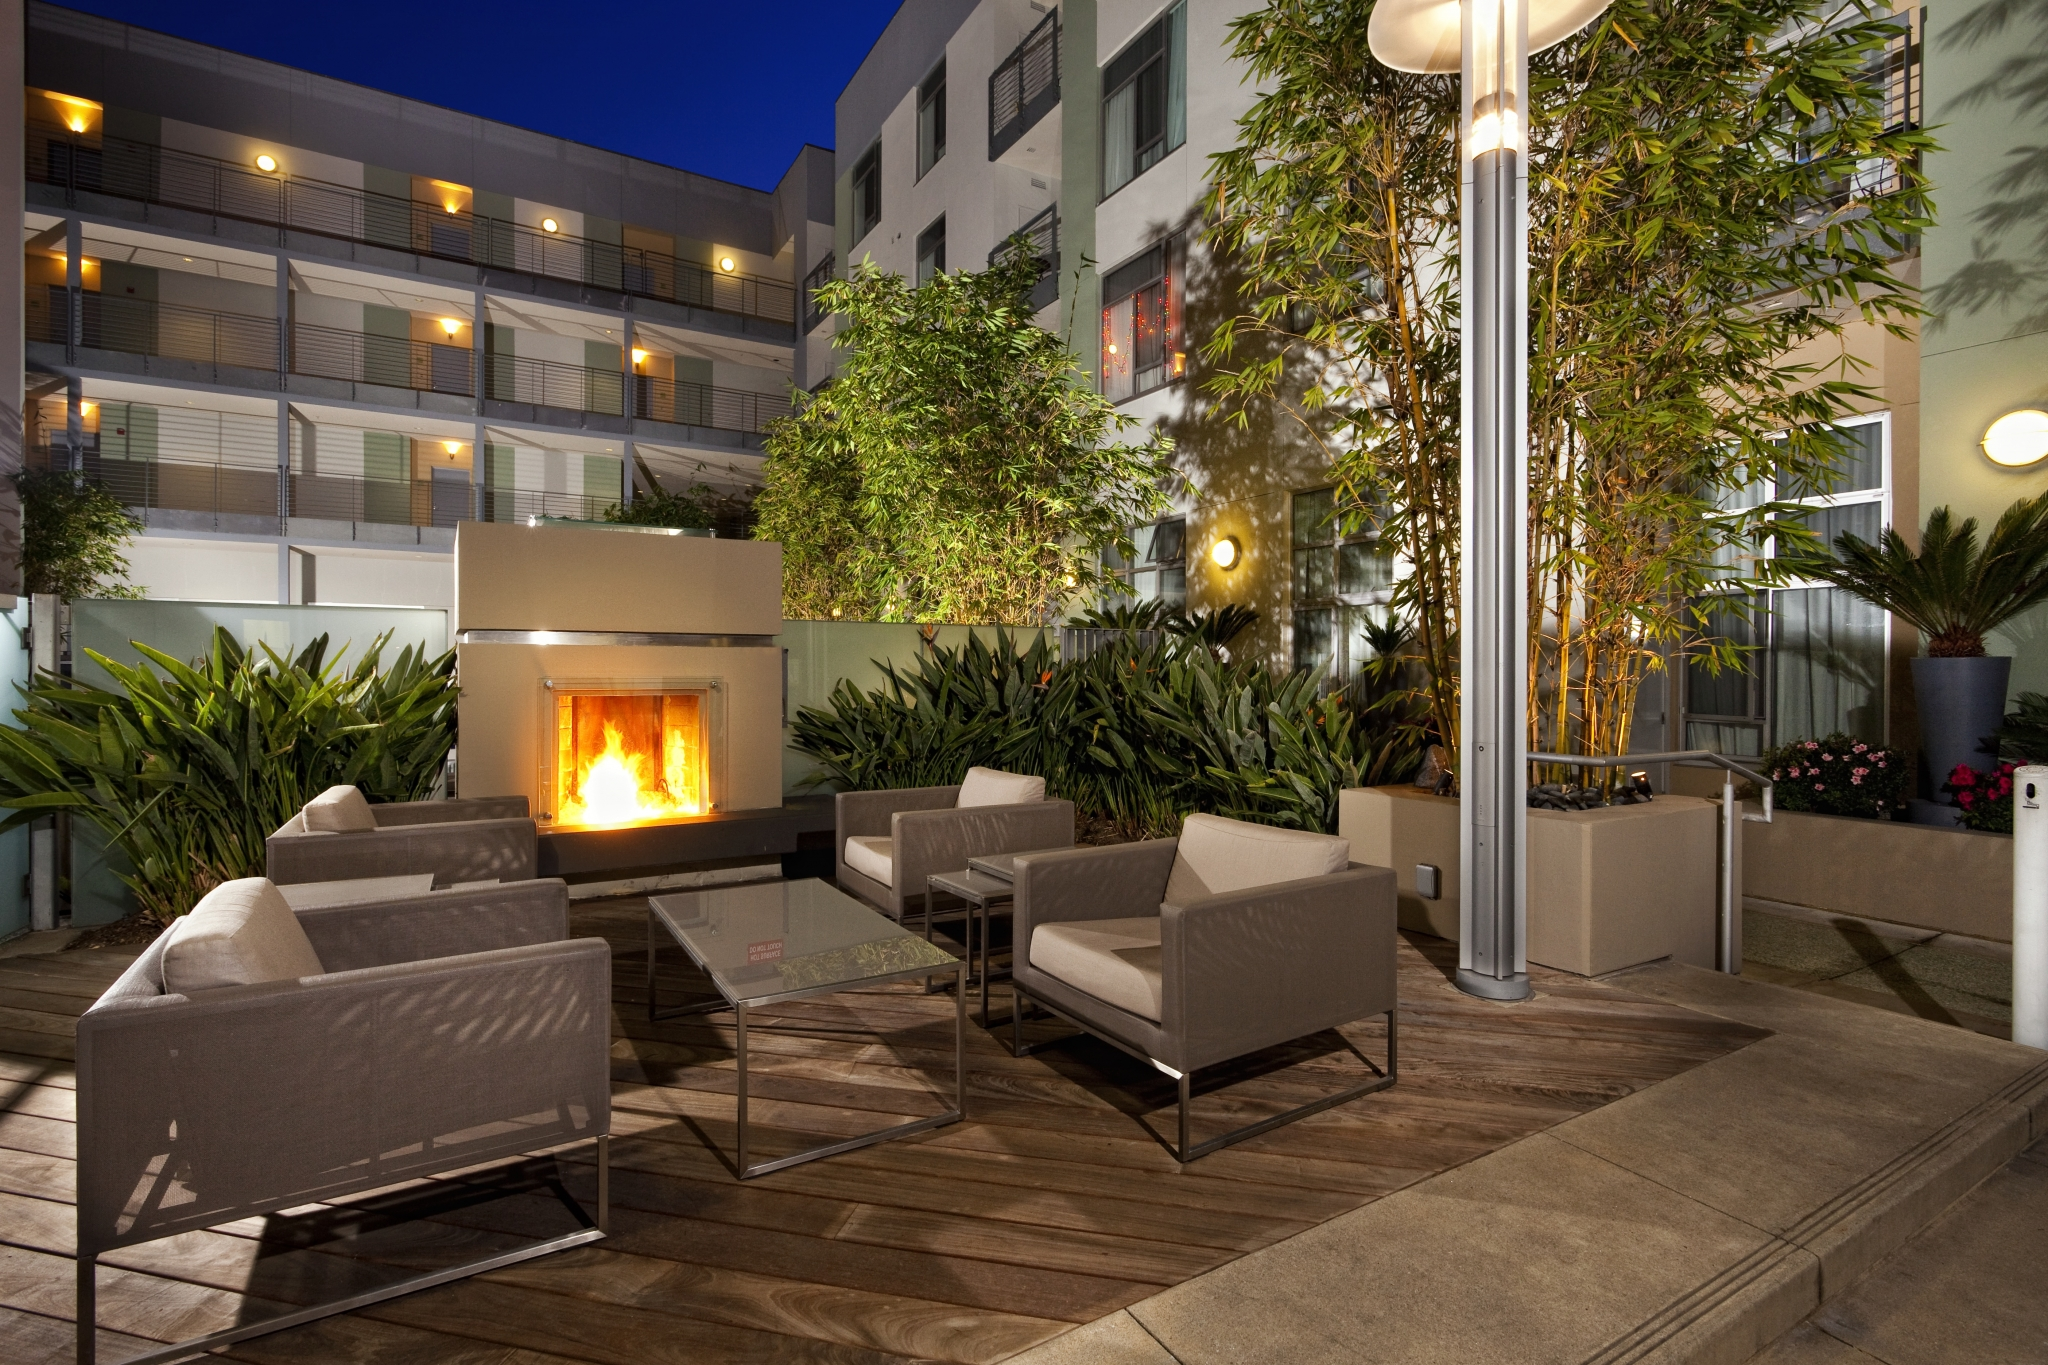 Outdoor patio at Sunset and Vine Apartments in Hollywood CA